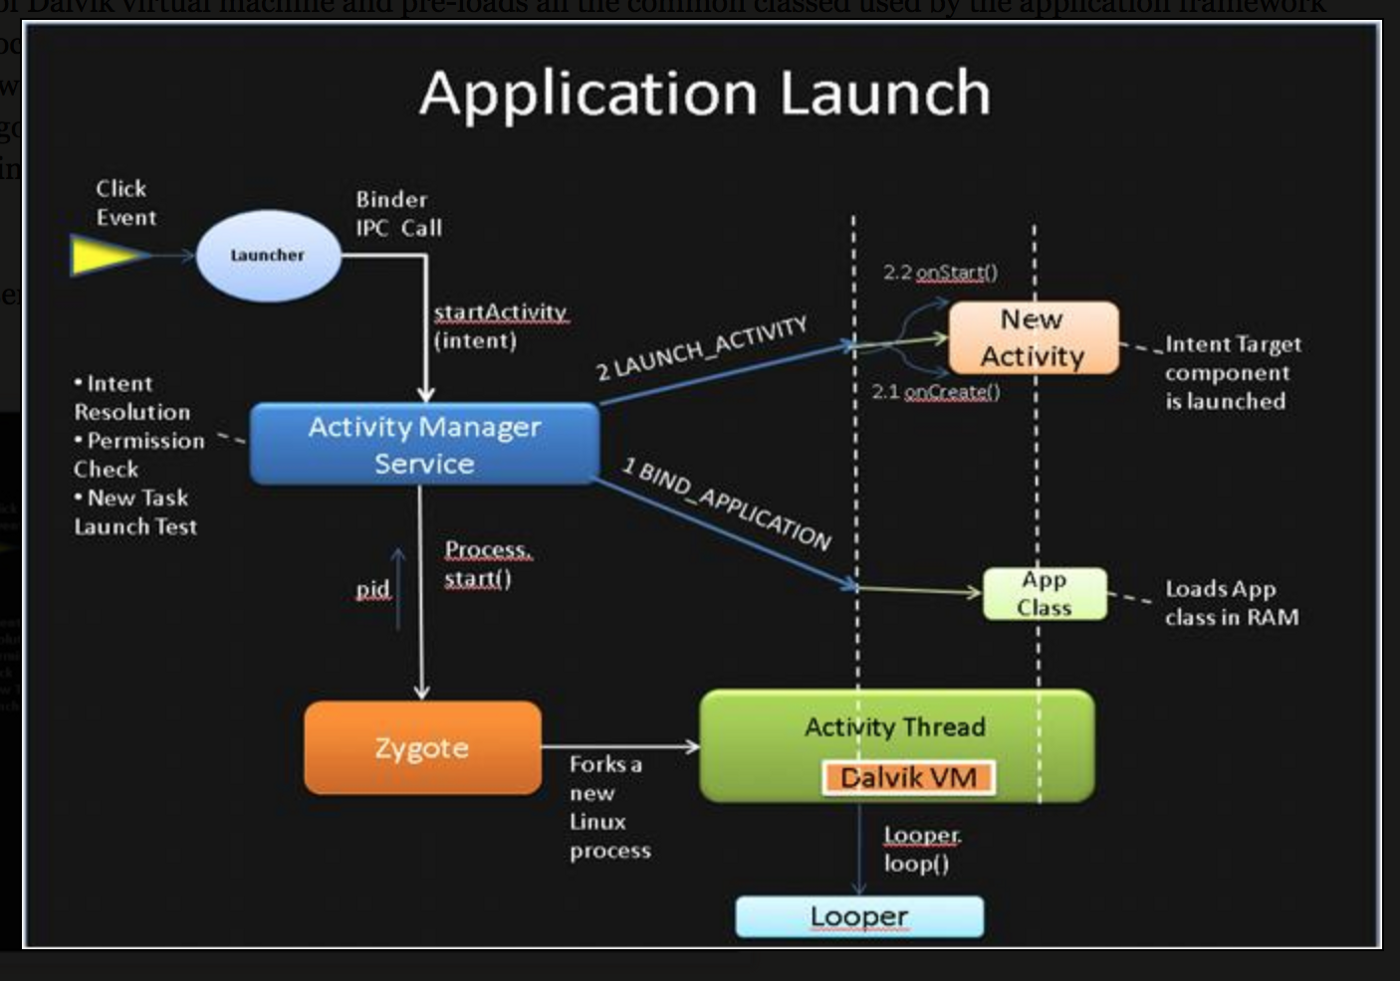 Android Application Launch explained: from Zygote to your Activity